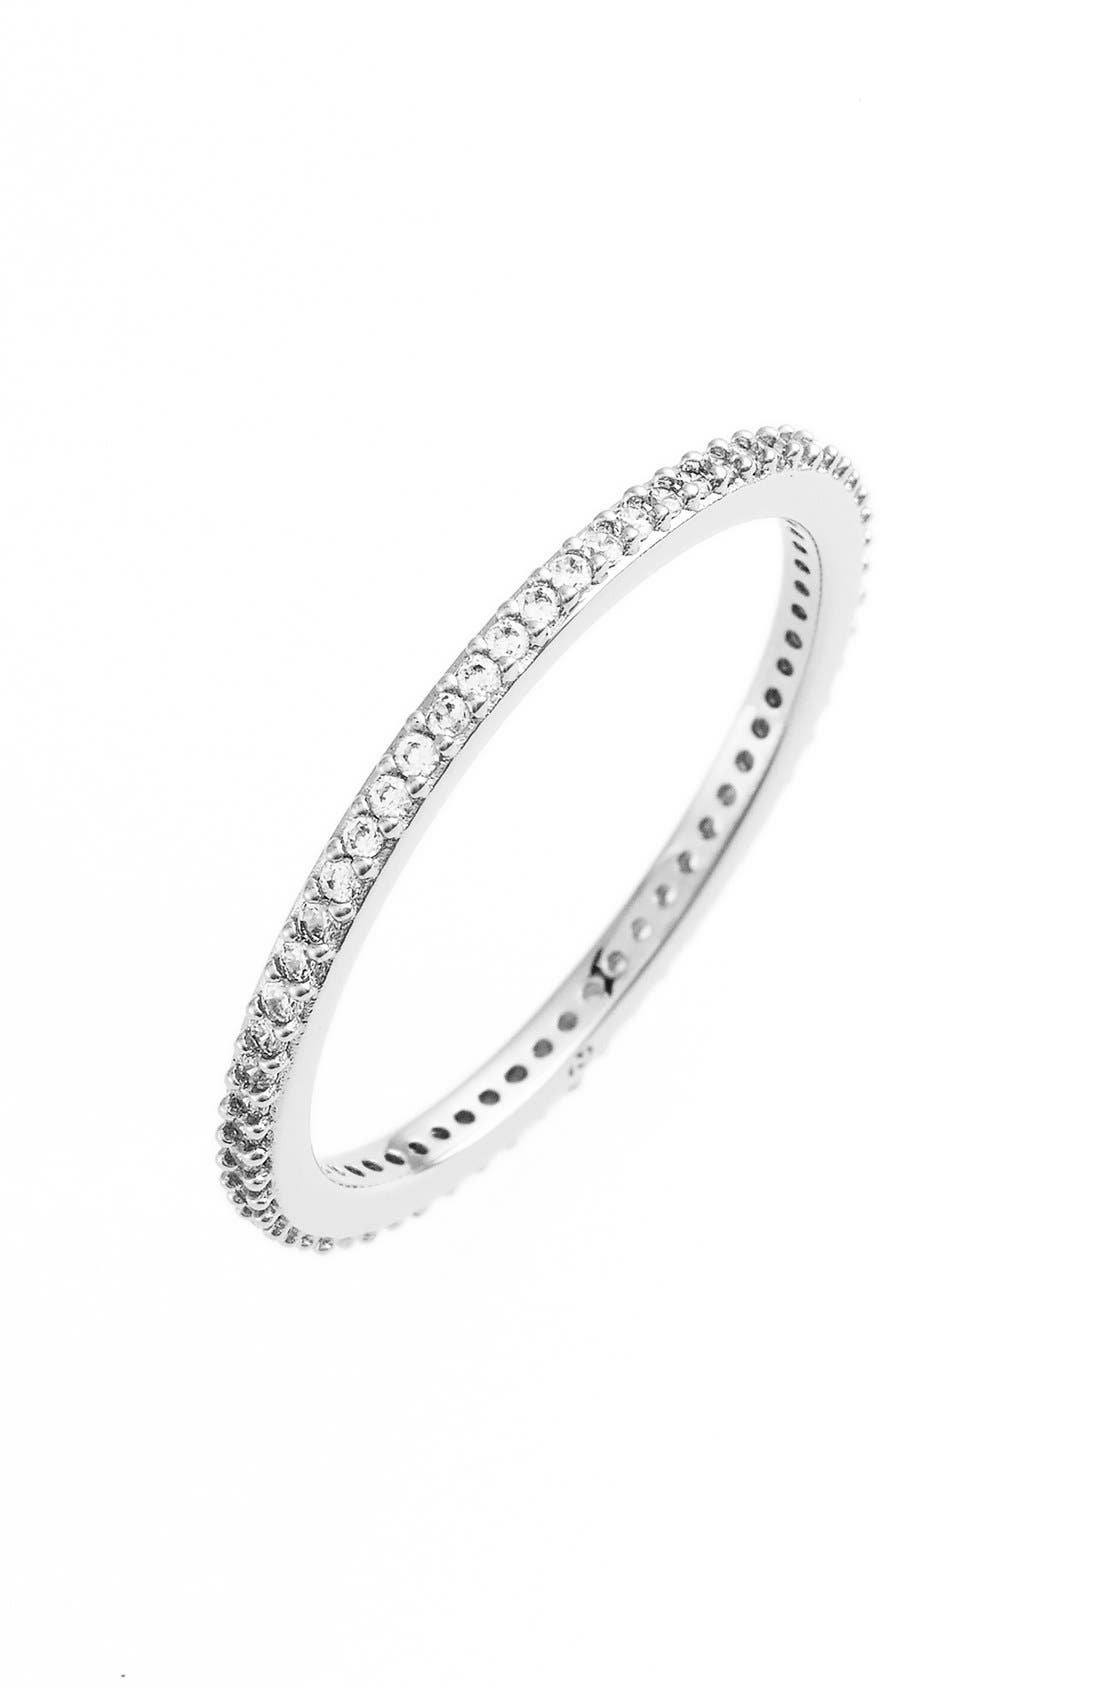 Skinny Cubic Zirconia Pavé Band Ring,                             Main thumbnail 1, color,                             SILVER